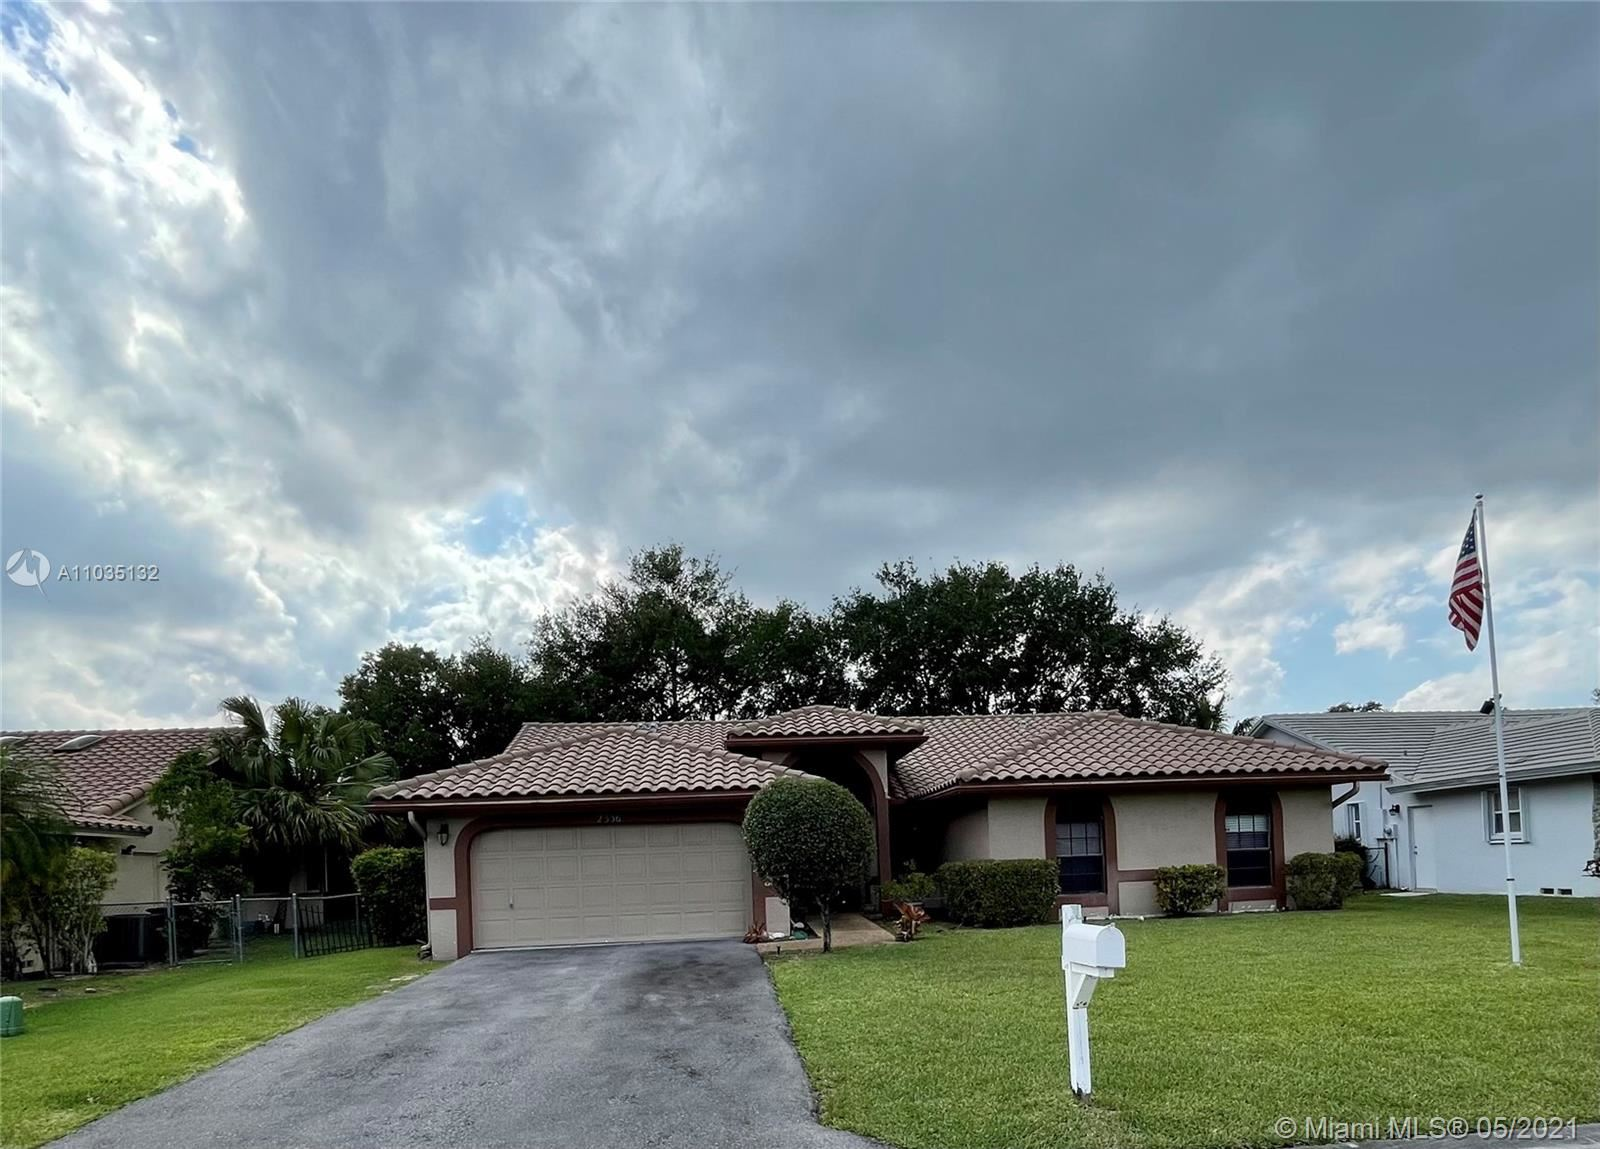 2336 NW 97th Ln, Coral Springs, FL 33065 - #: A11035132